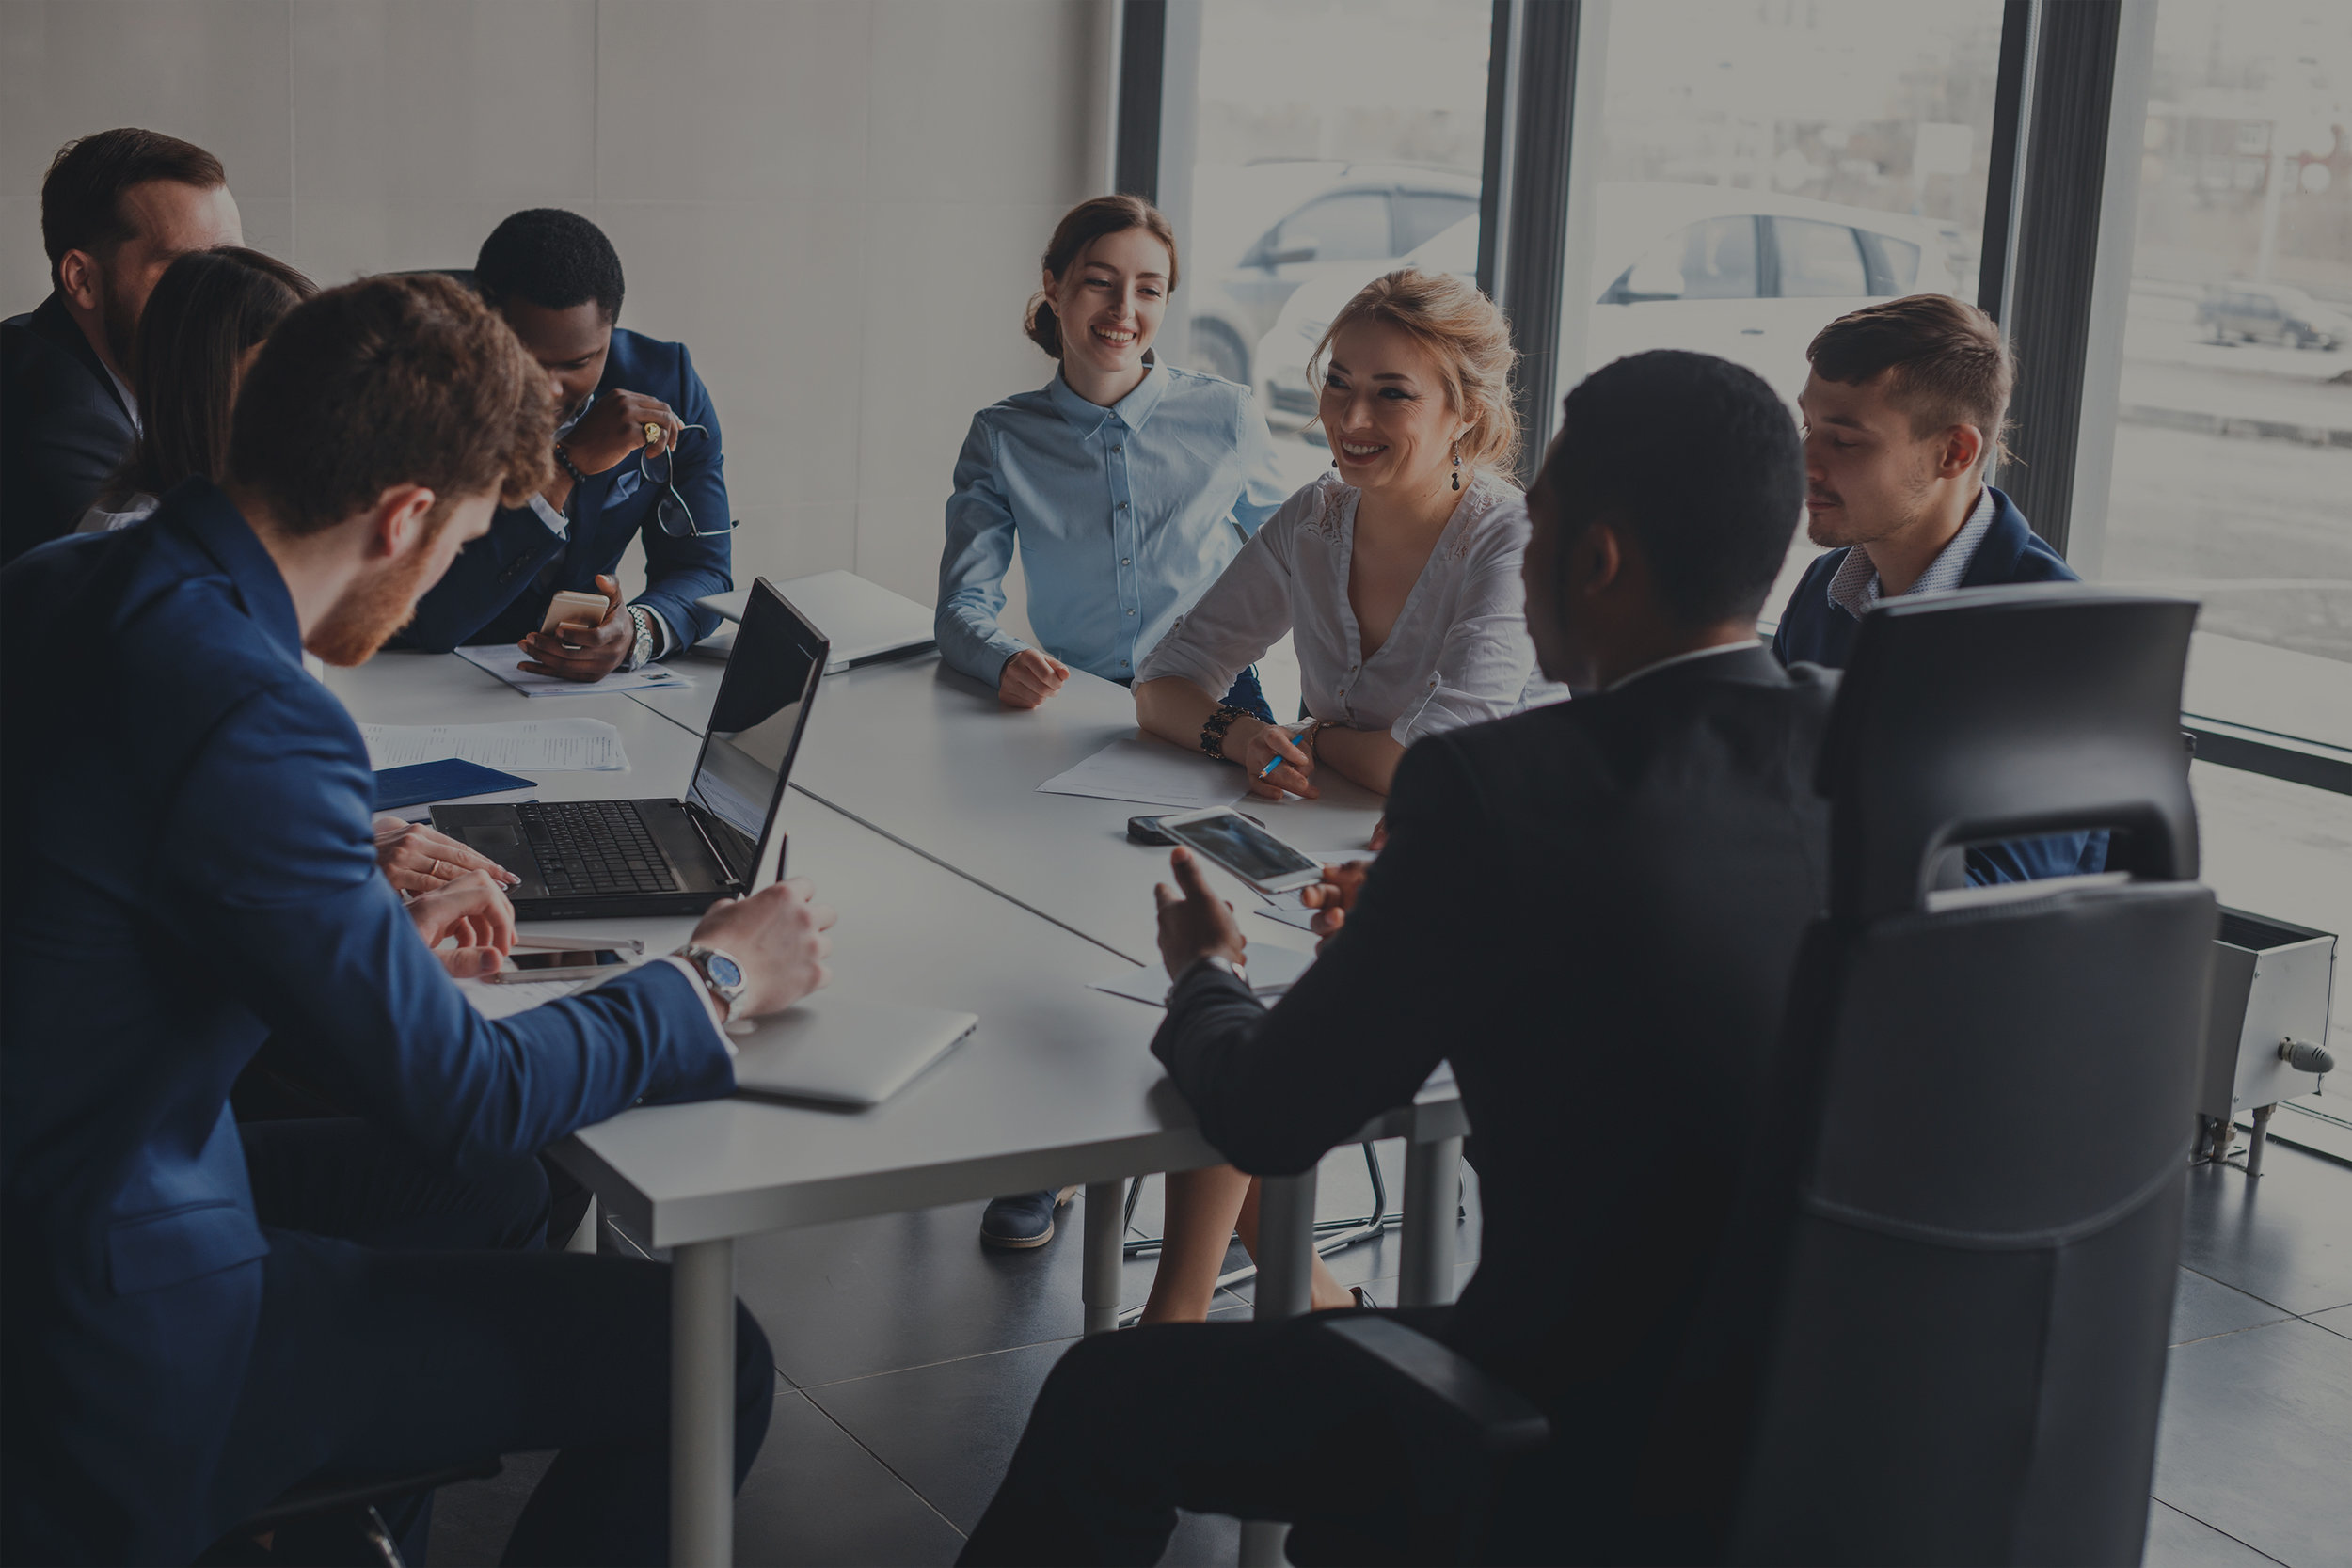 Agile Transformation - Coaching the capabilities, and building the culture, needed for your organization to adopt Agile, DevOps, and other methodologies.